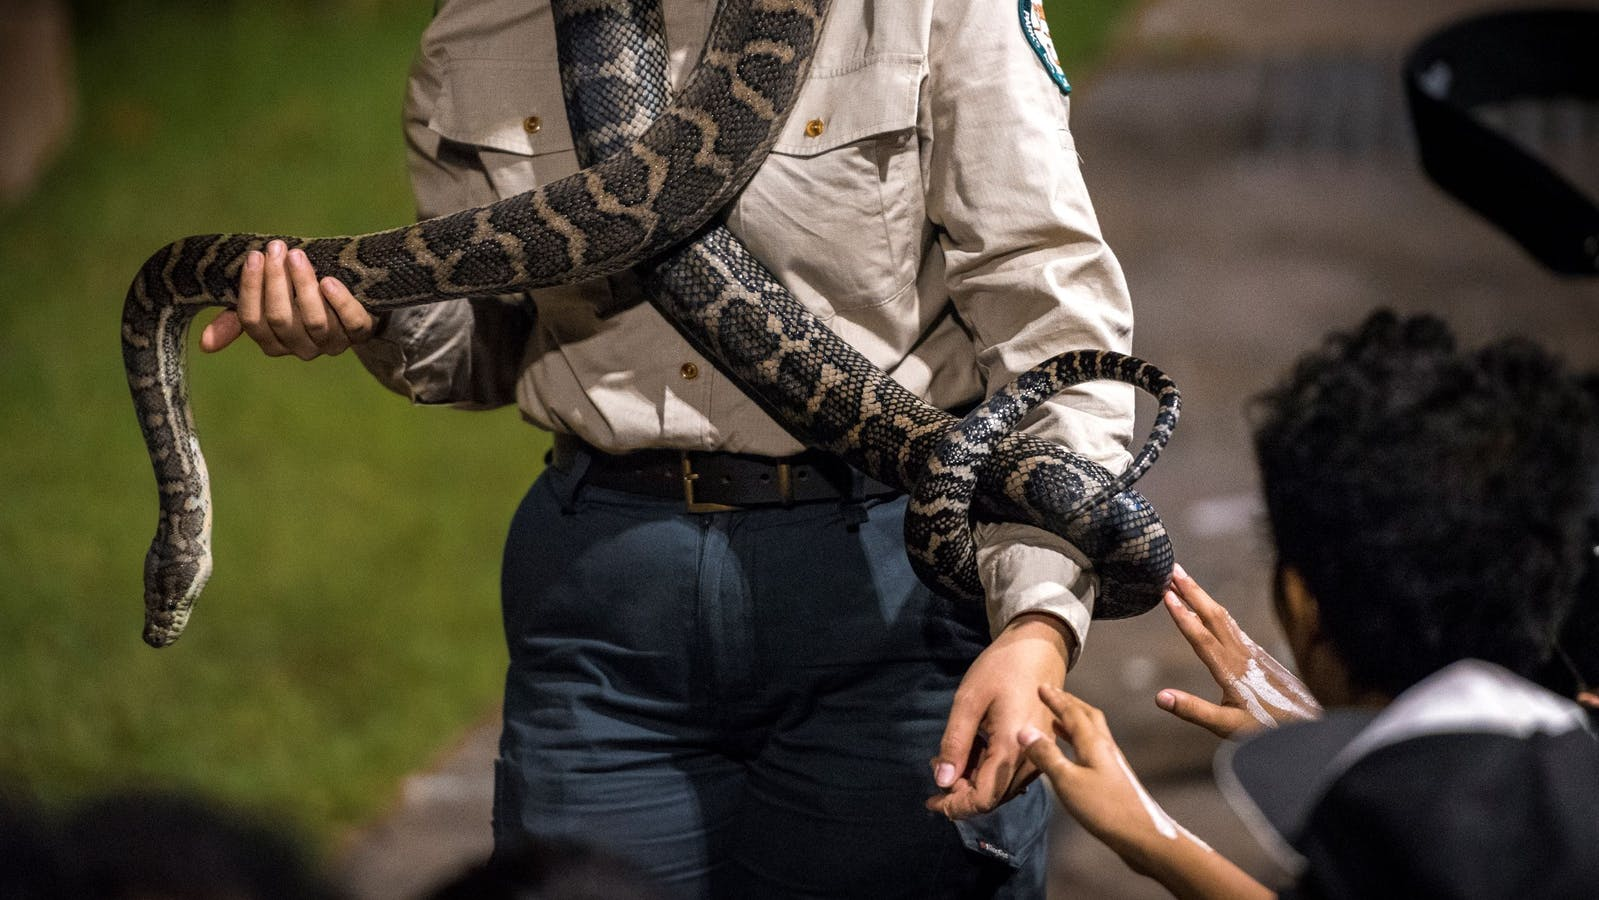 A Park Ranger is holding a python across both his arms and is showing it to the audience.